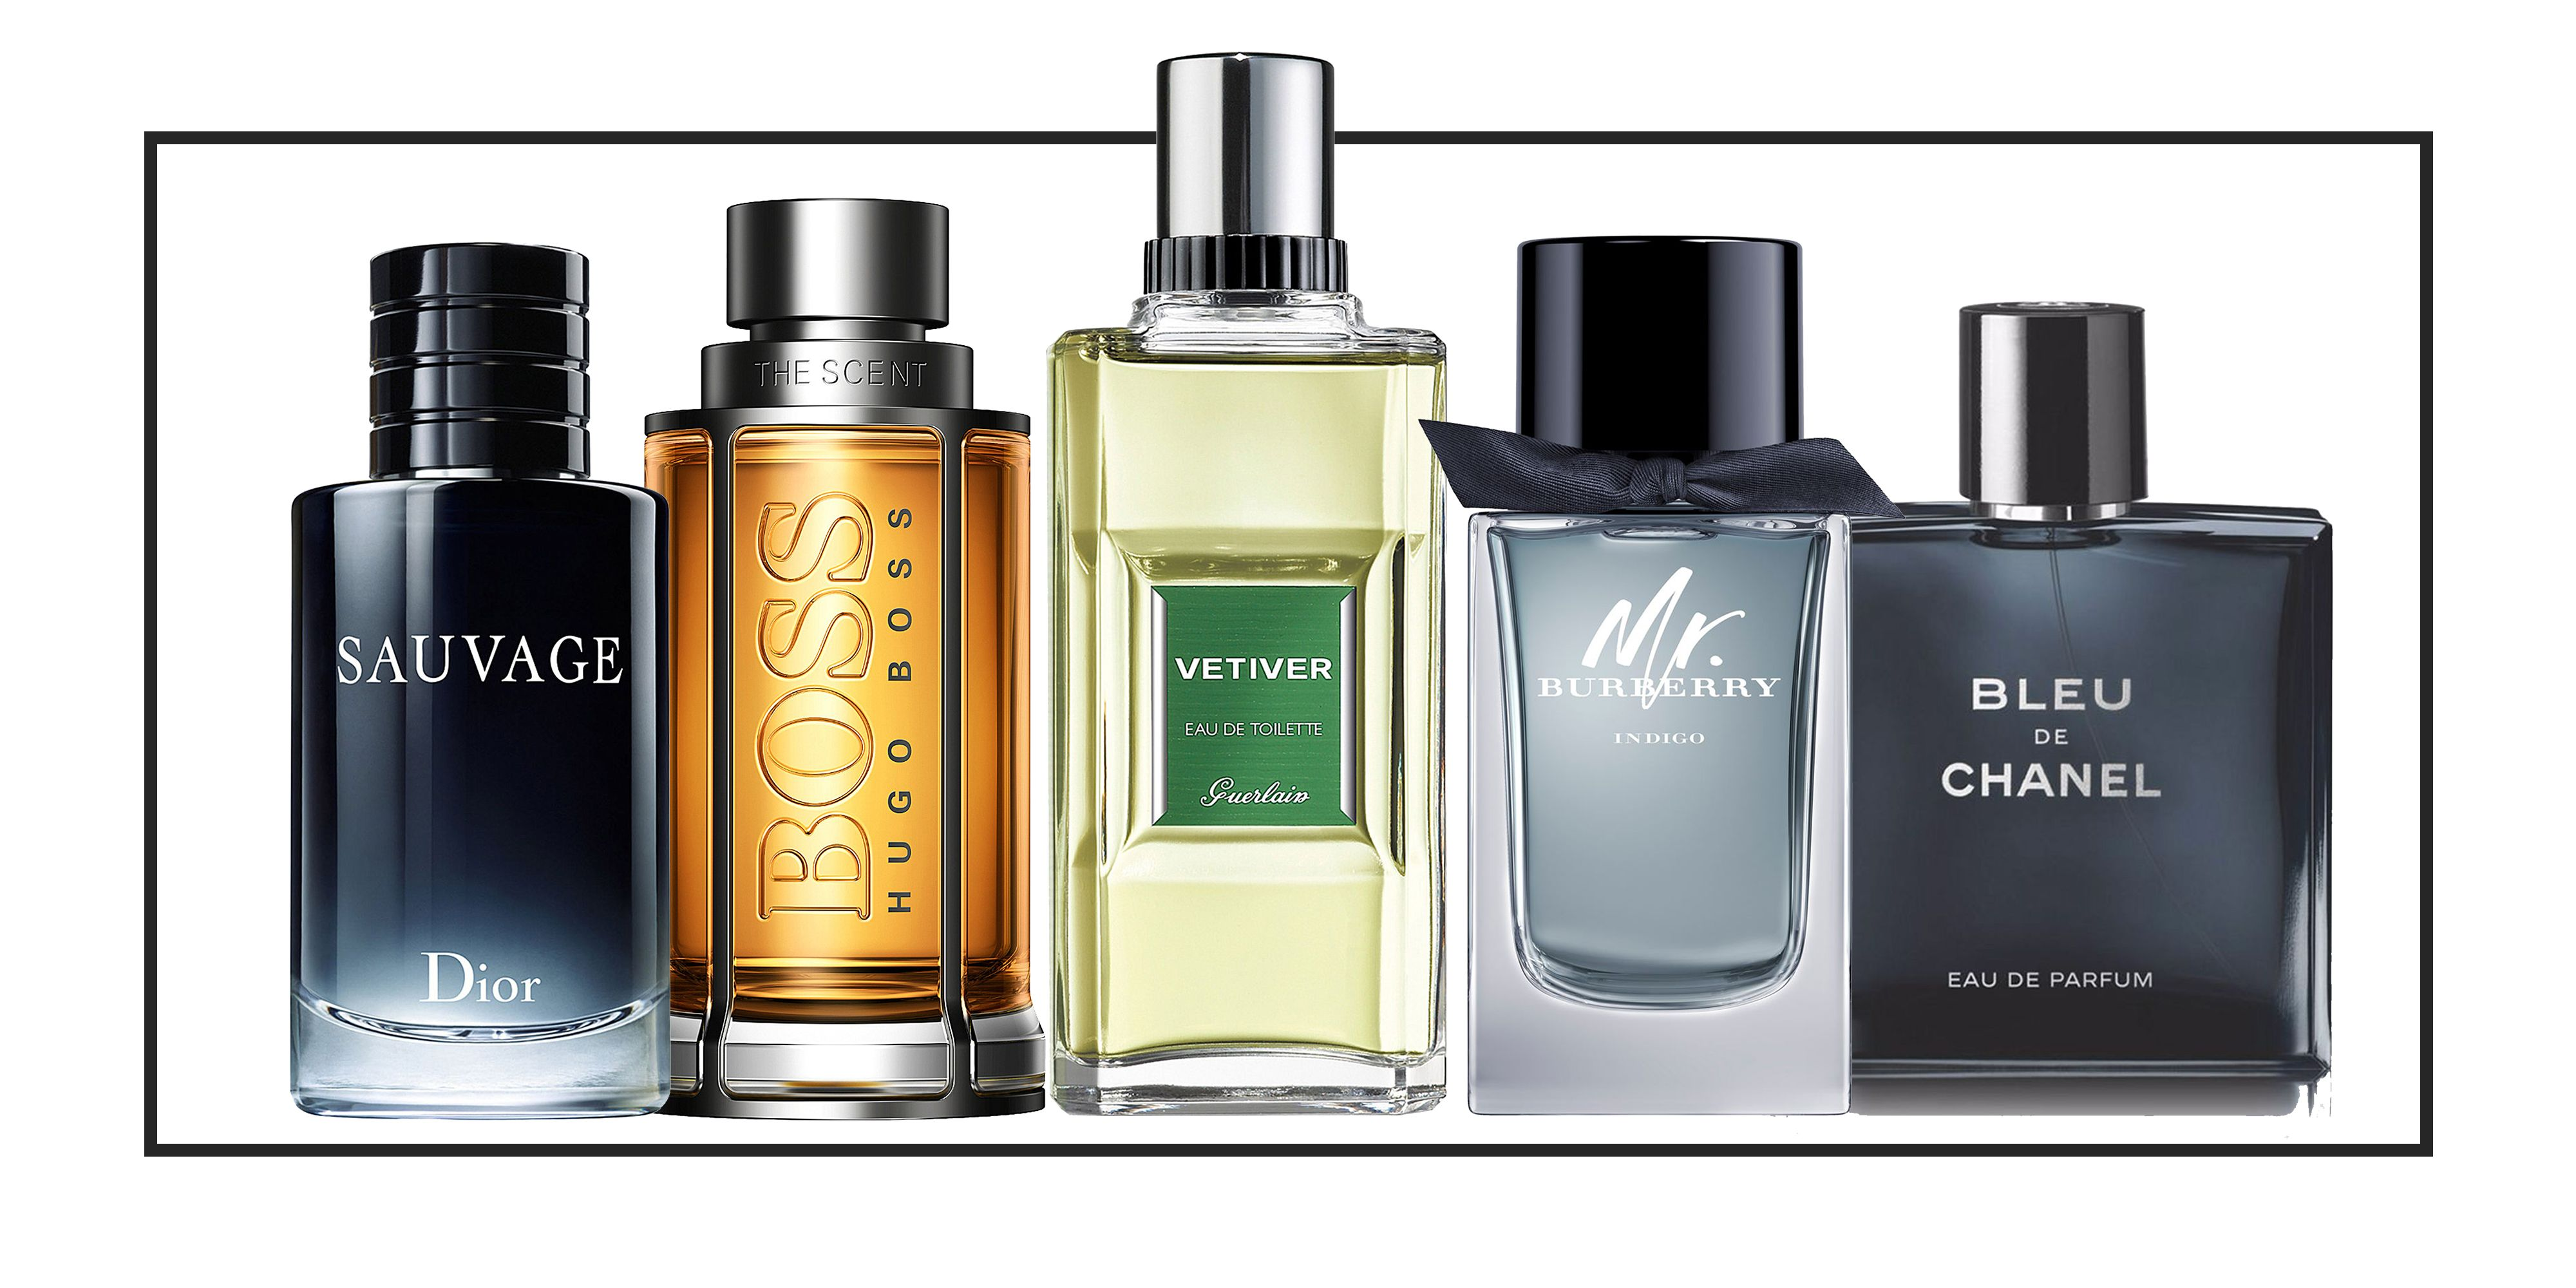 9c9a729a58f3 The best male fragrances and aftershaves for men to give as gifts